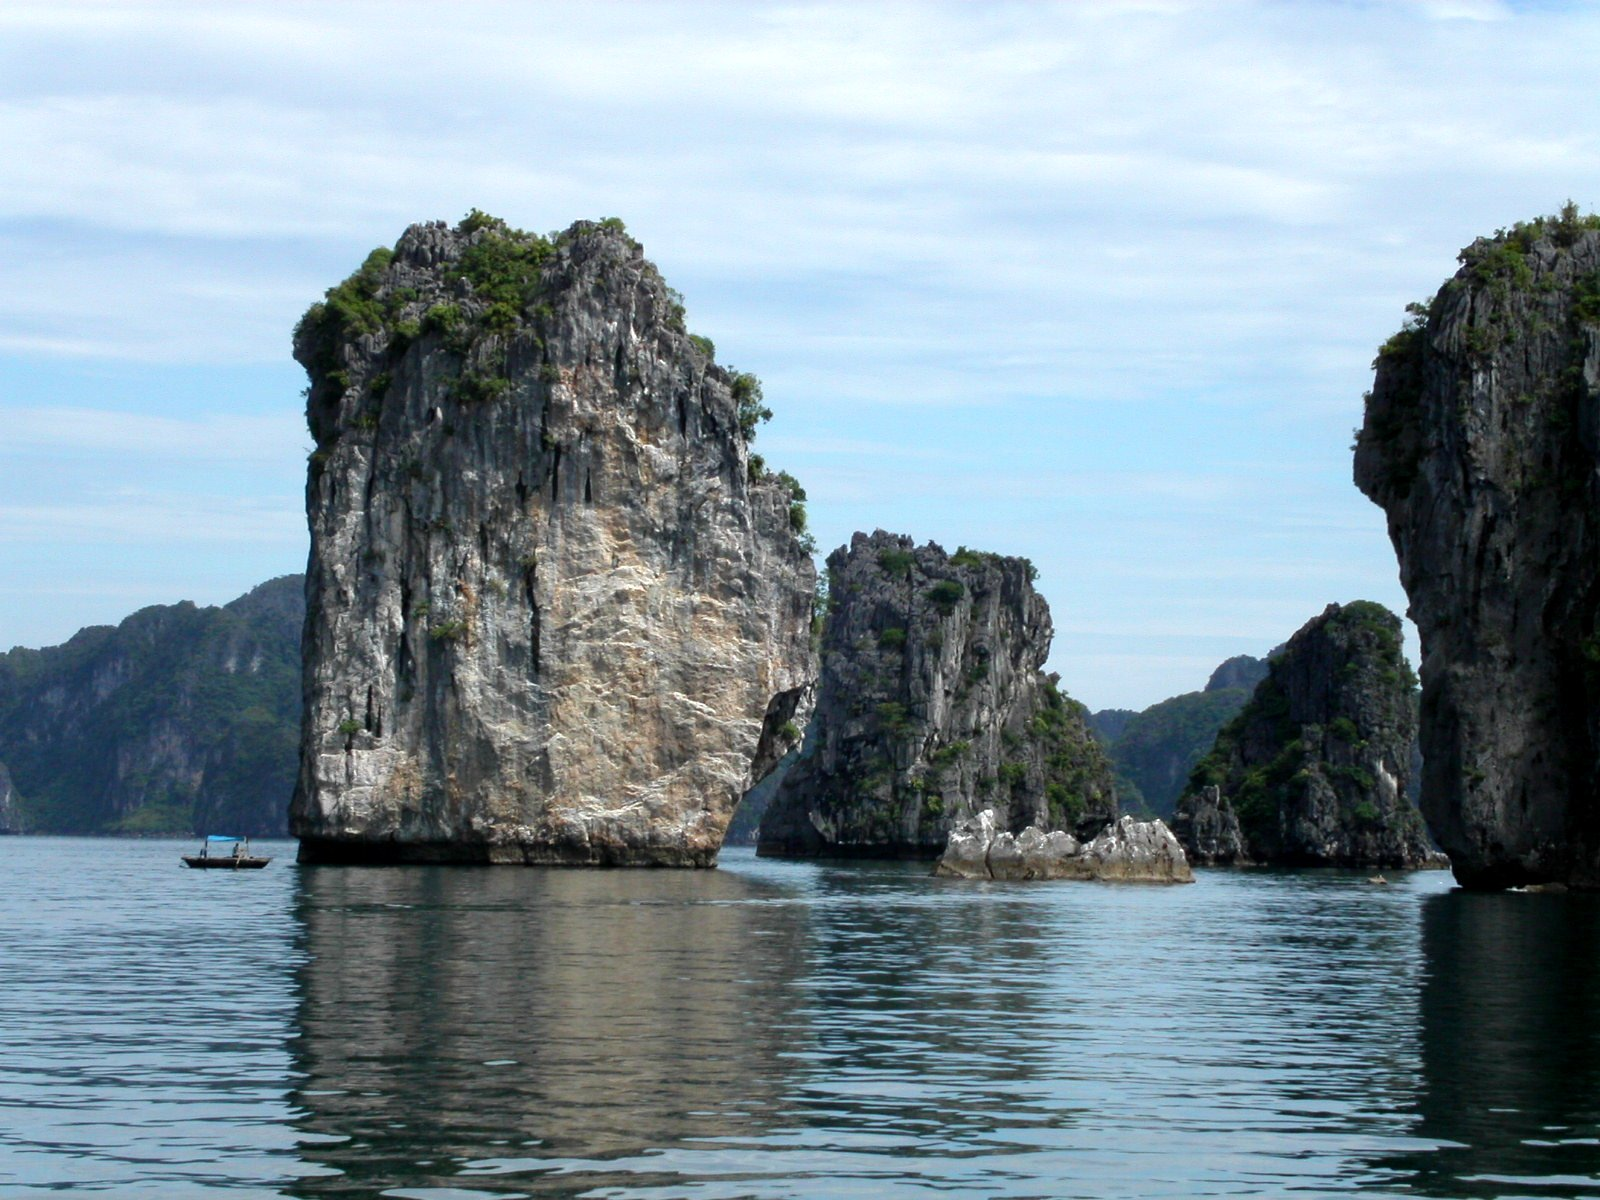 I would never want to miss the beauty of Halong Bay. After leaving Hanoi, the area will be our first stop.